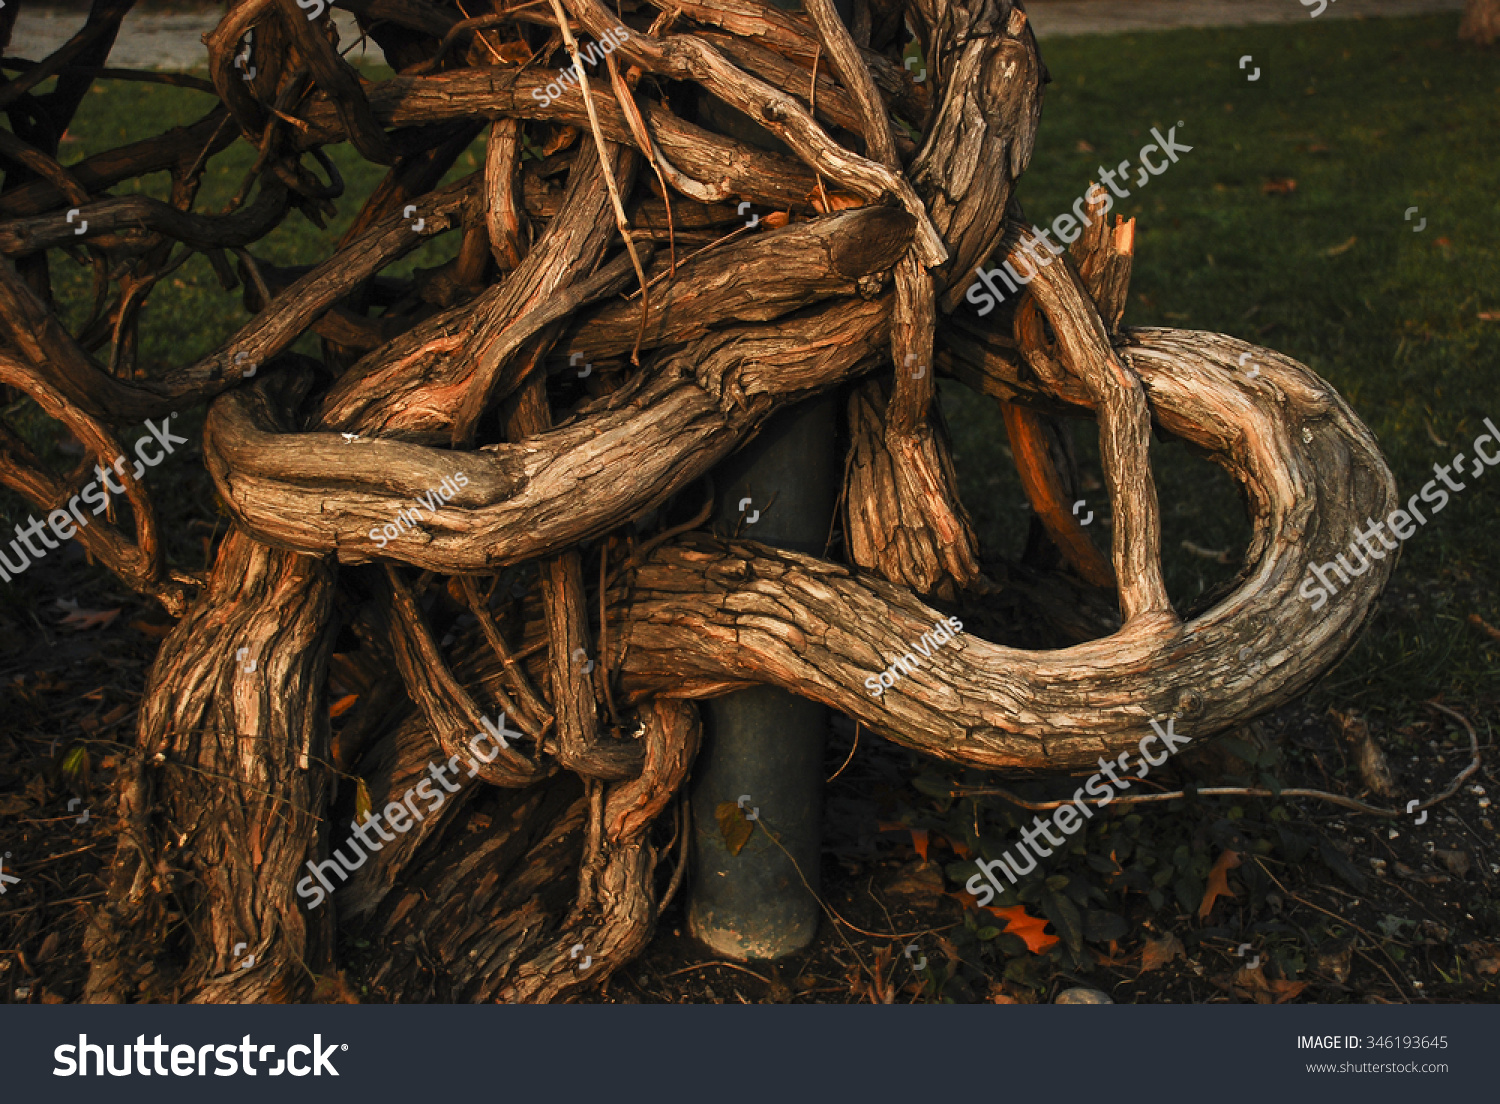 Italian Florence: Wooden Embrace/Weird Bush With Its Branches Intertwined